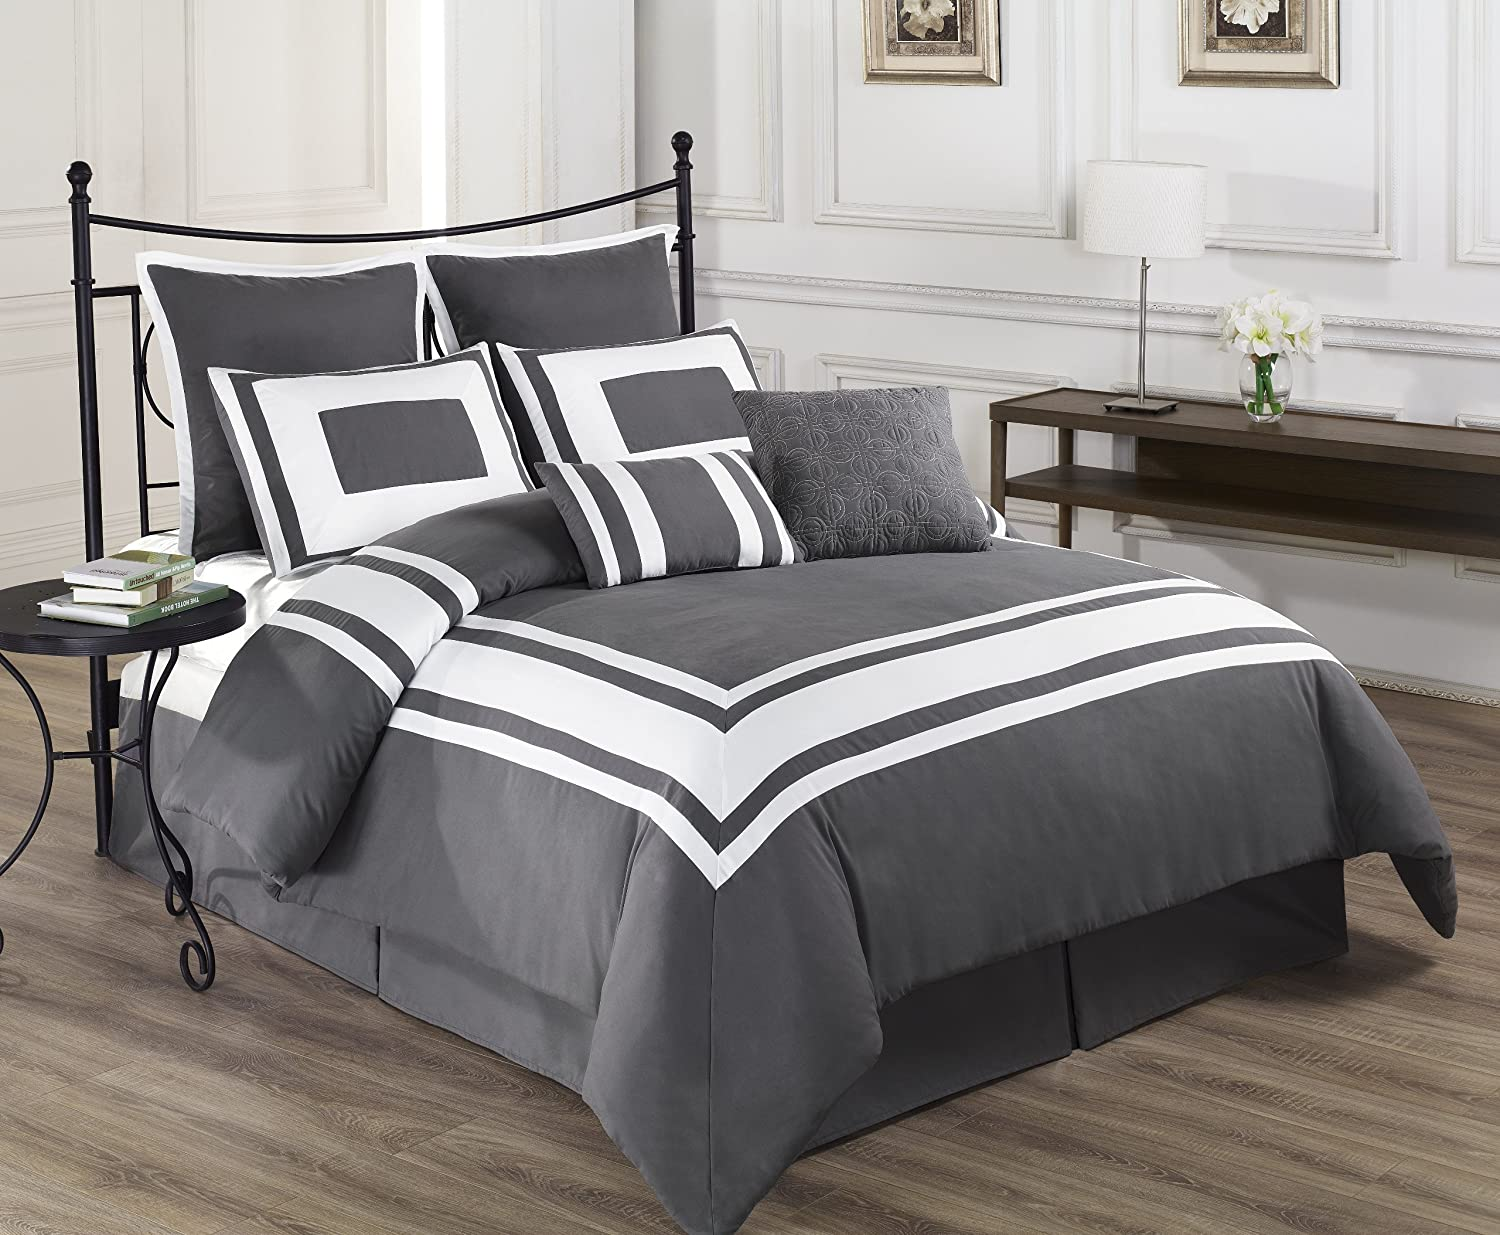 Grey And White Striped Bedding Images